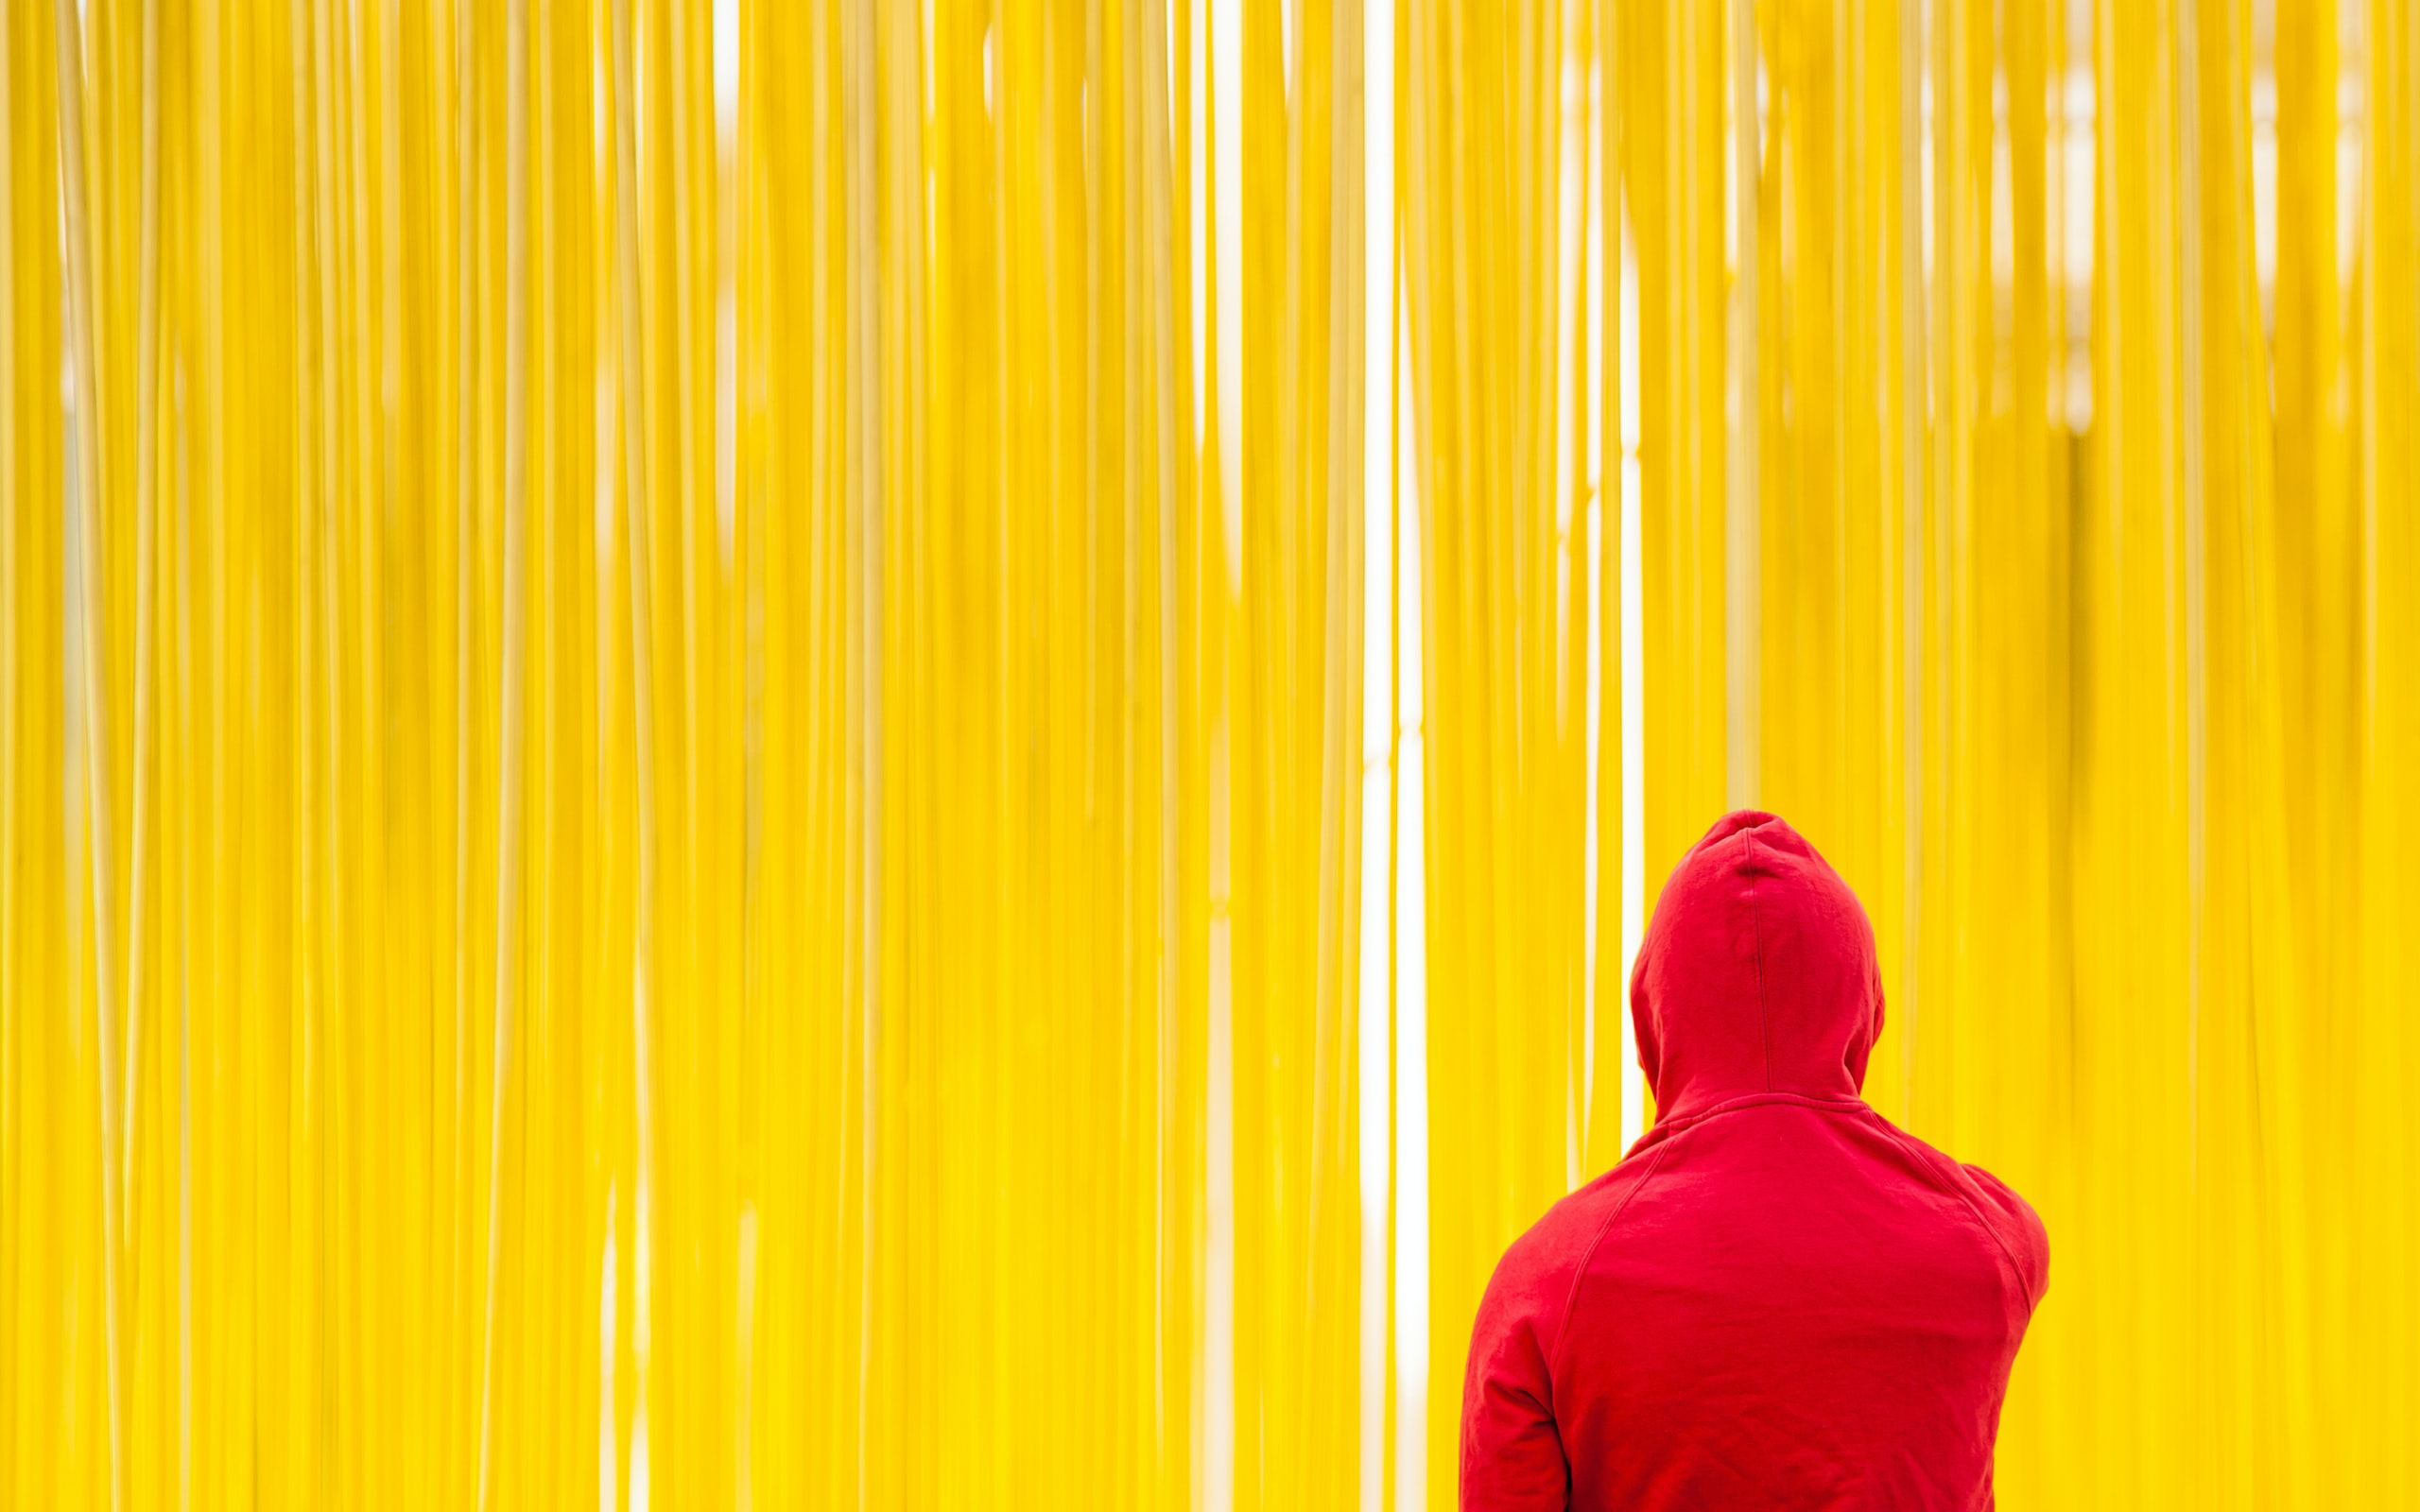 person standing in front of yellow strings